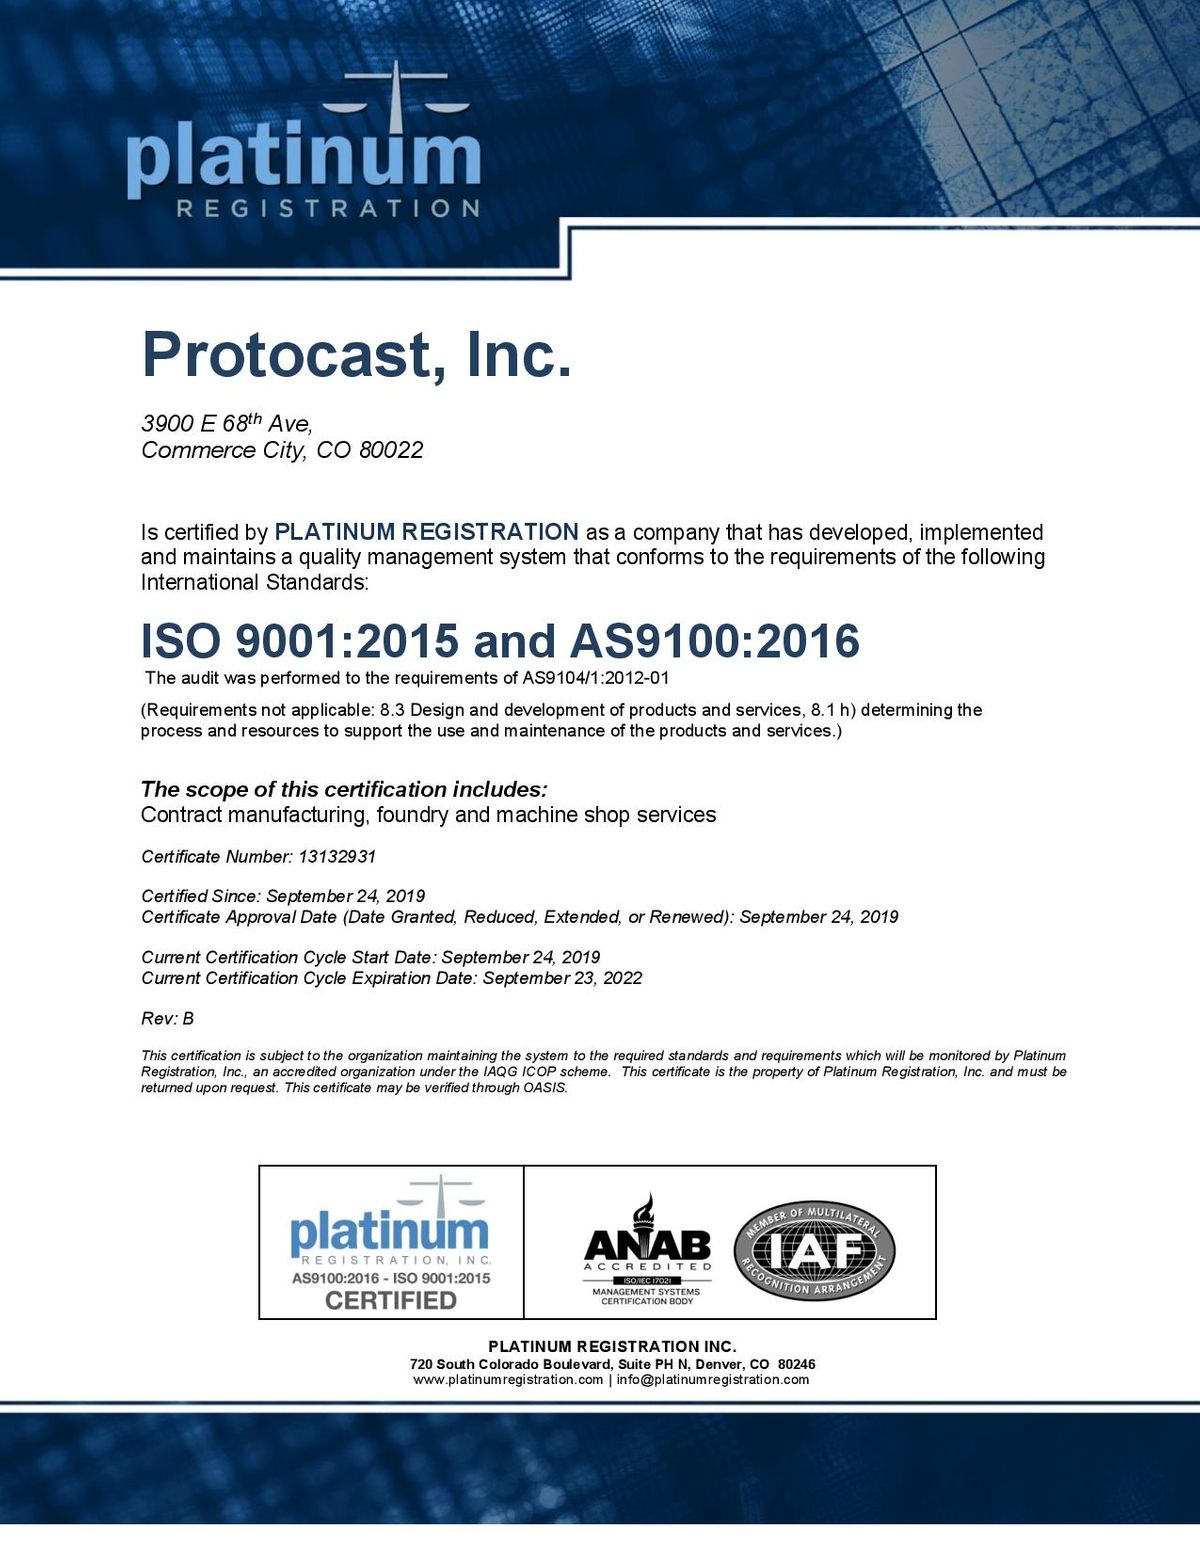 AS9100 ISO 9001 Protocast, Inc. Cert EXP2022SEPT24 RevA - sam-page-001.jpg